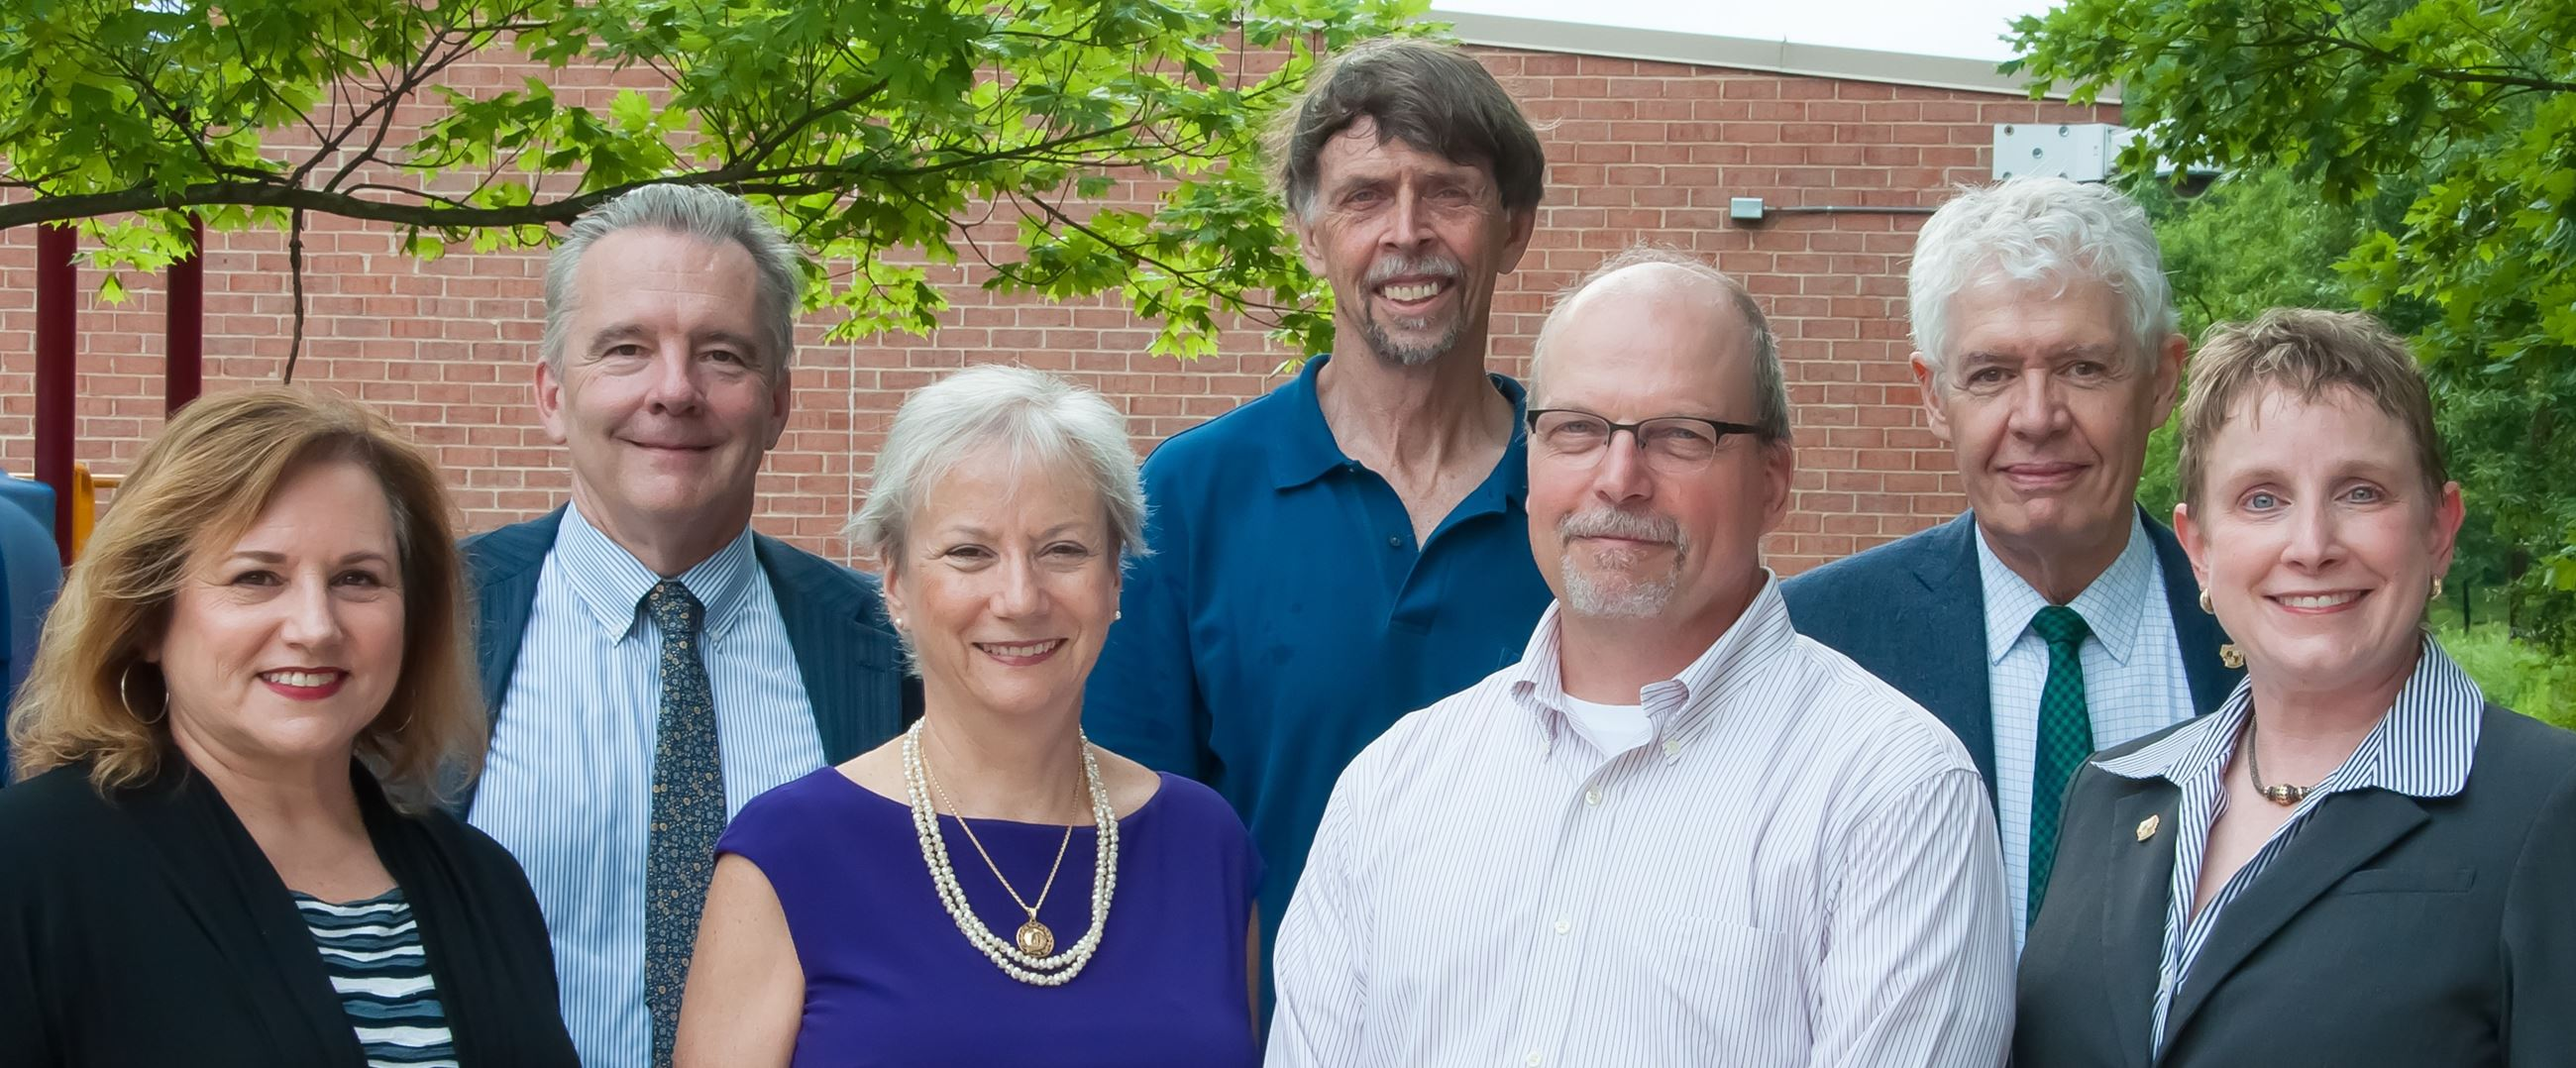 Cropped June 2019 Council group